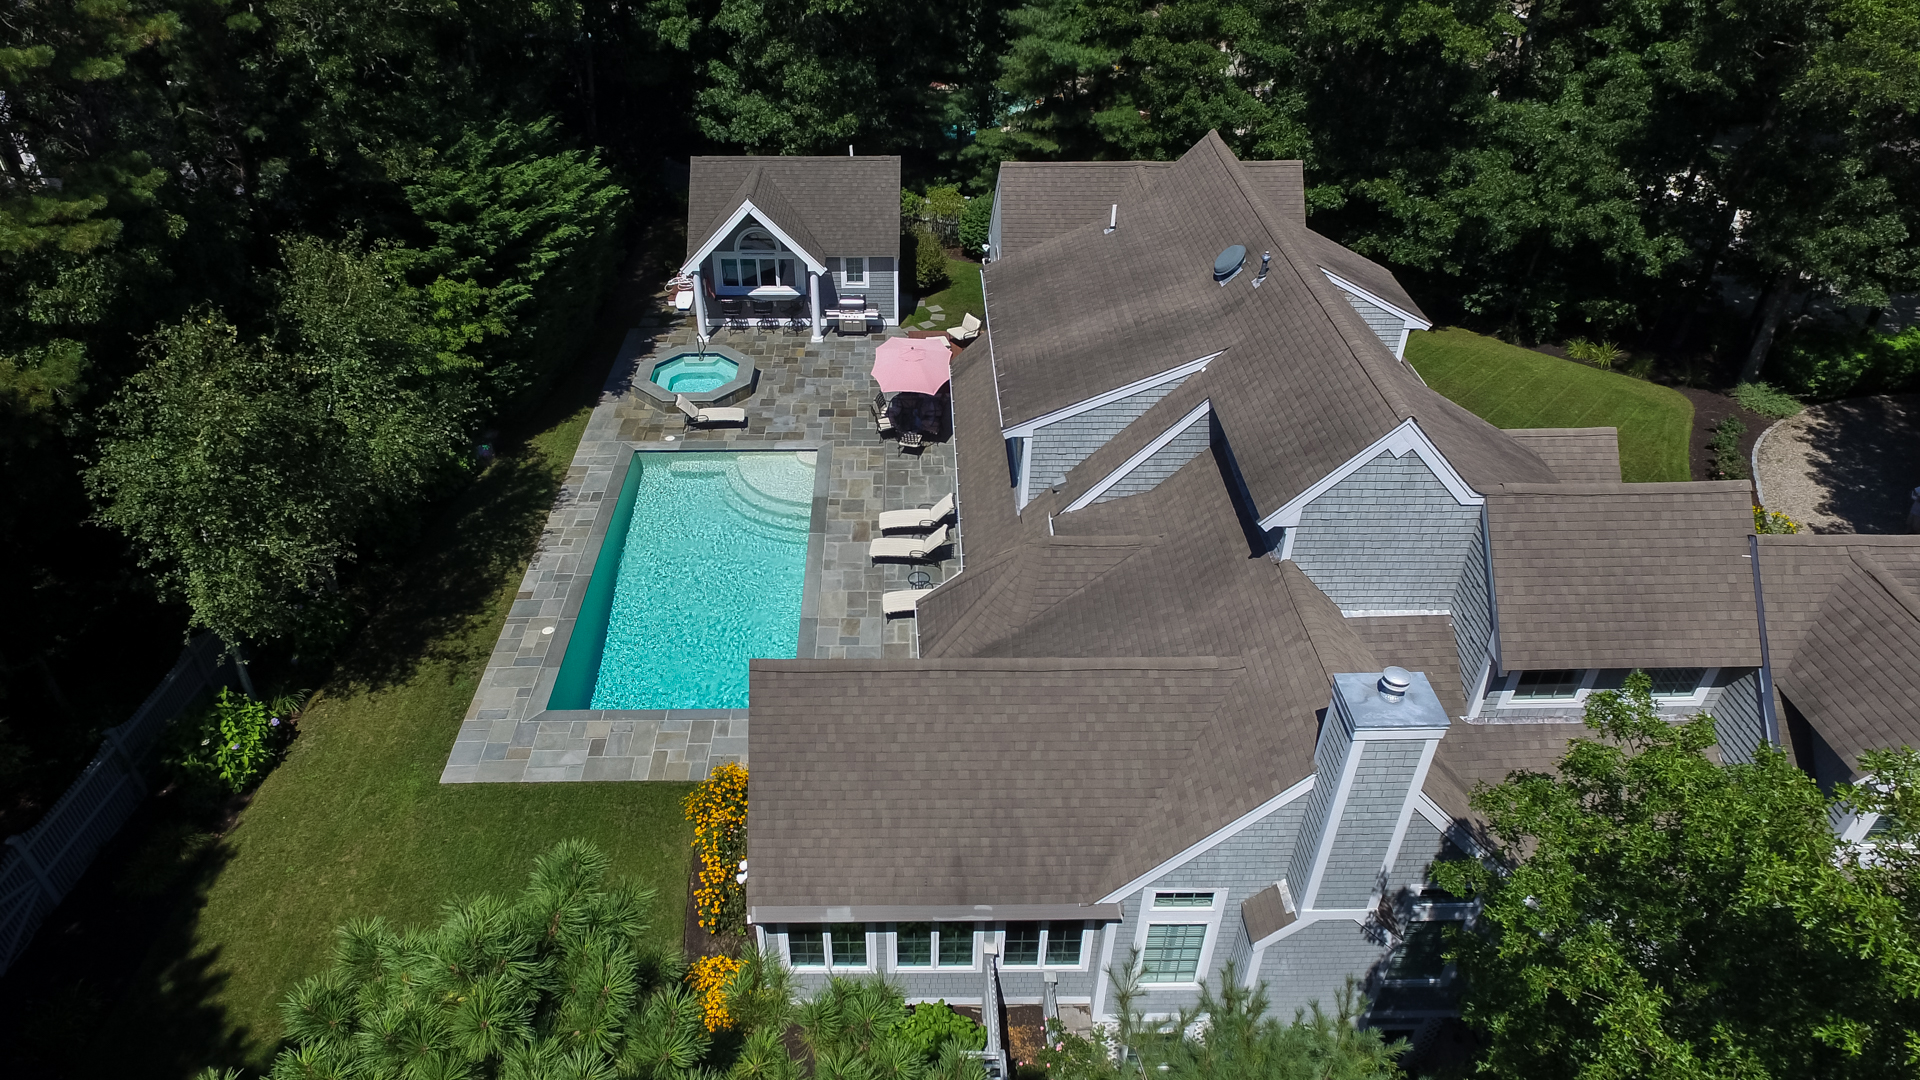 Moradia para Venda às LUXURIOUS ONE-OF-A KIND COMPLETELY FURNISHED HOME 36 Topping Lift New Seabury, Massachusetts, 02649 Estados UnidosEm/Em torno de: Mashpee